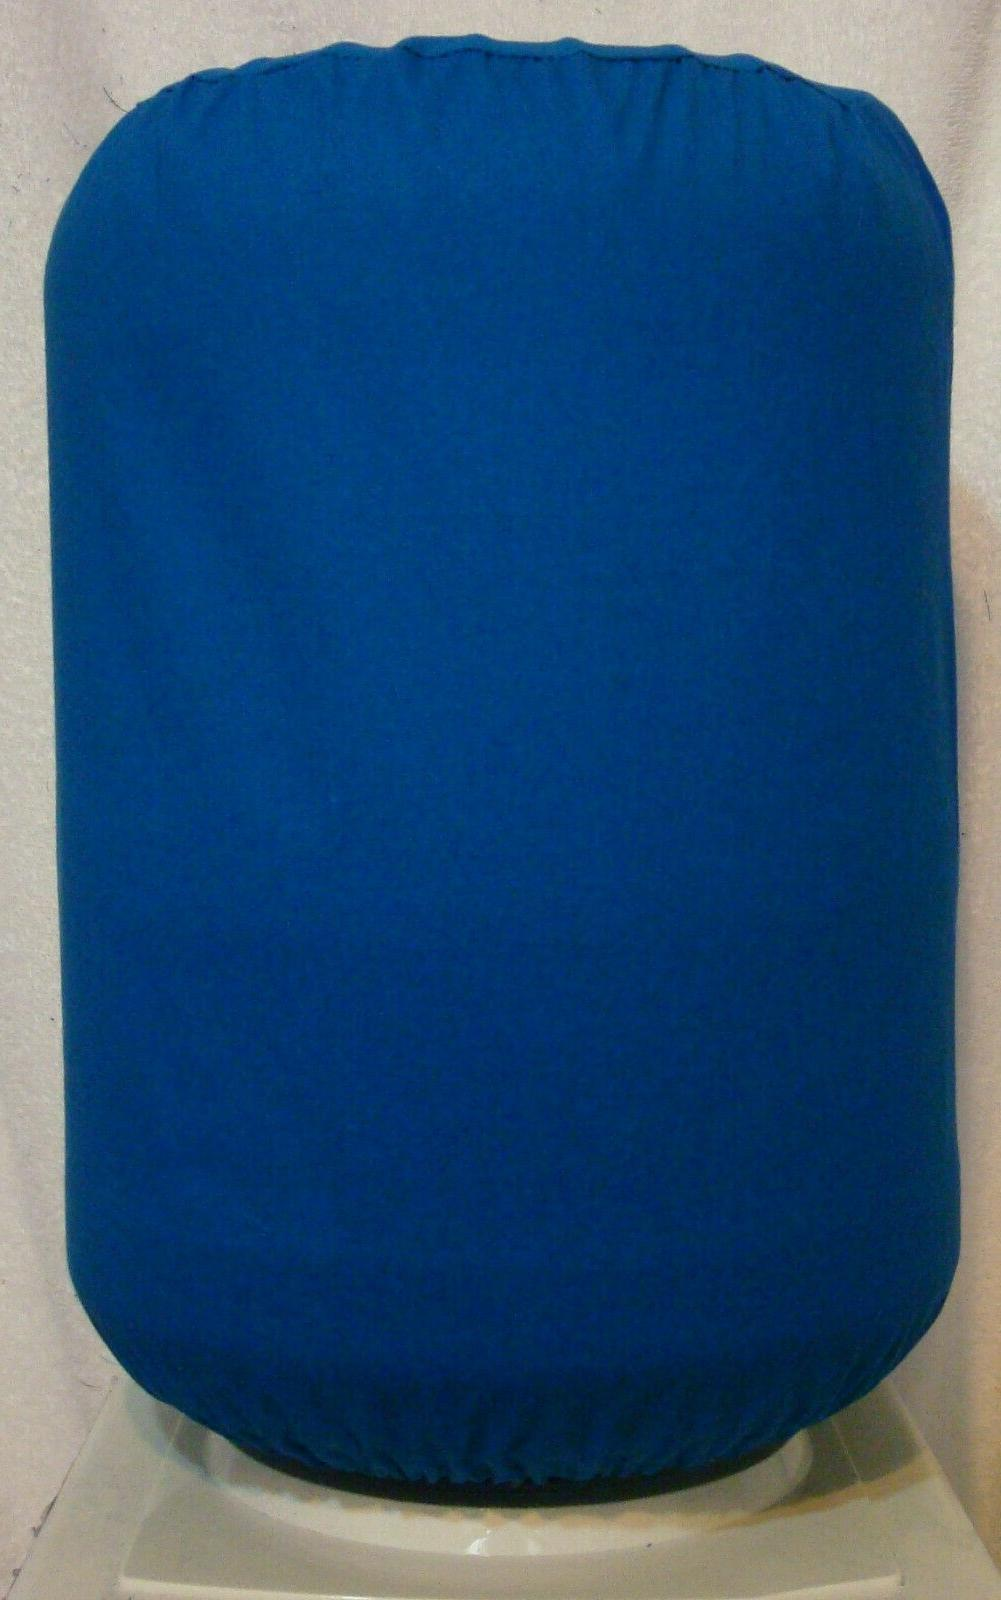 "New Water Cooler Cover ""PICK COLOR"" 5 gallon bottle, Tan Blu"